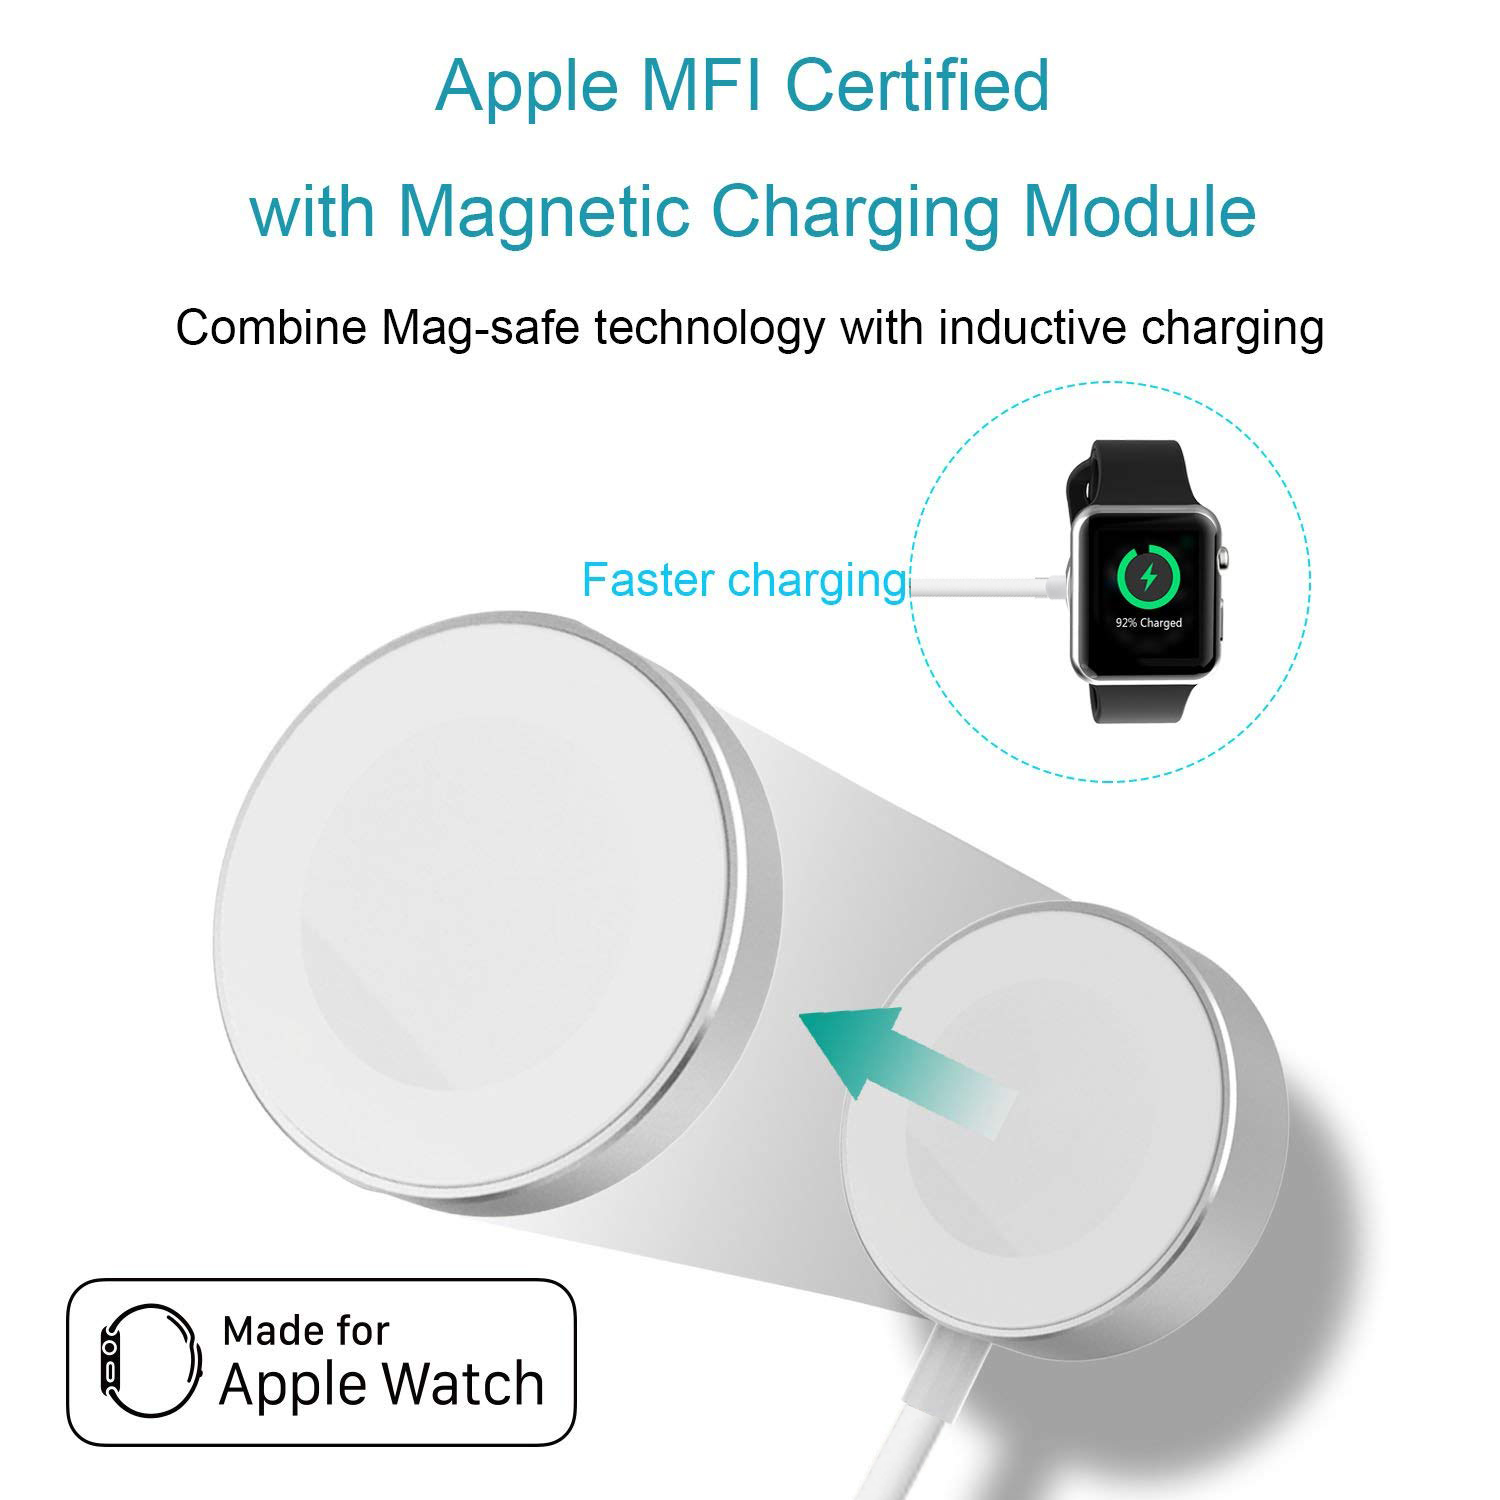 Wireless Charger for iWatch Series 2 3 USB MFi Certified Magnetic iWatch Charging Cable 3.3 feet/1meter for Apple Watch Charger magnetic charging for apple watch 4 3 2 1 iwatch 42mm 38mm 1 0ft 0 3m usb certified charger chargingcable 1m